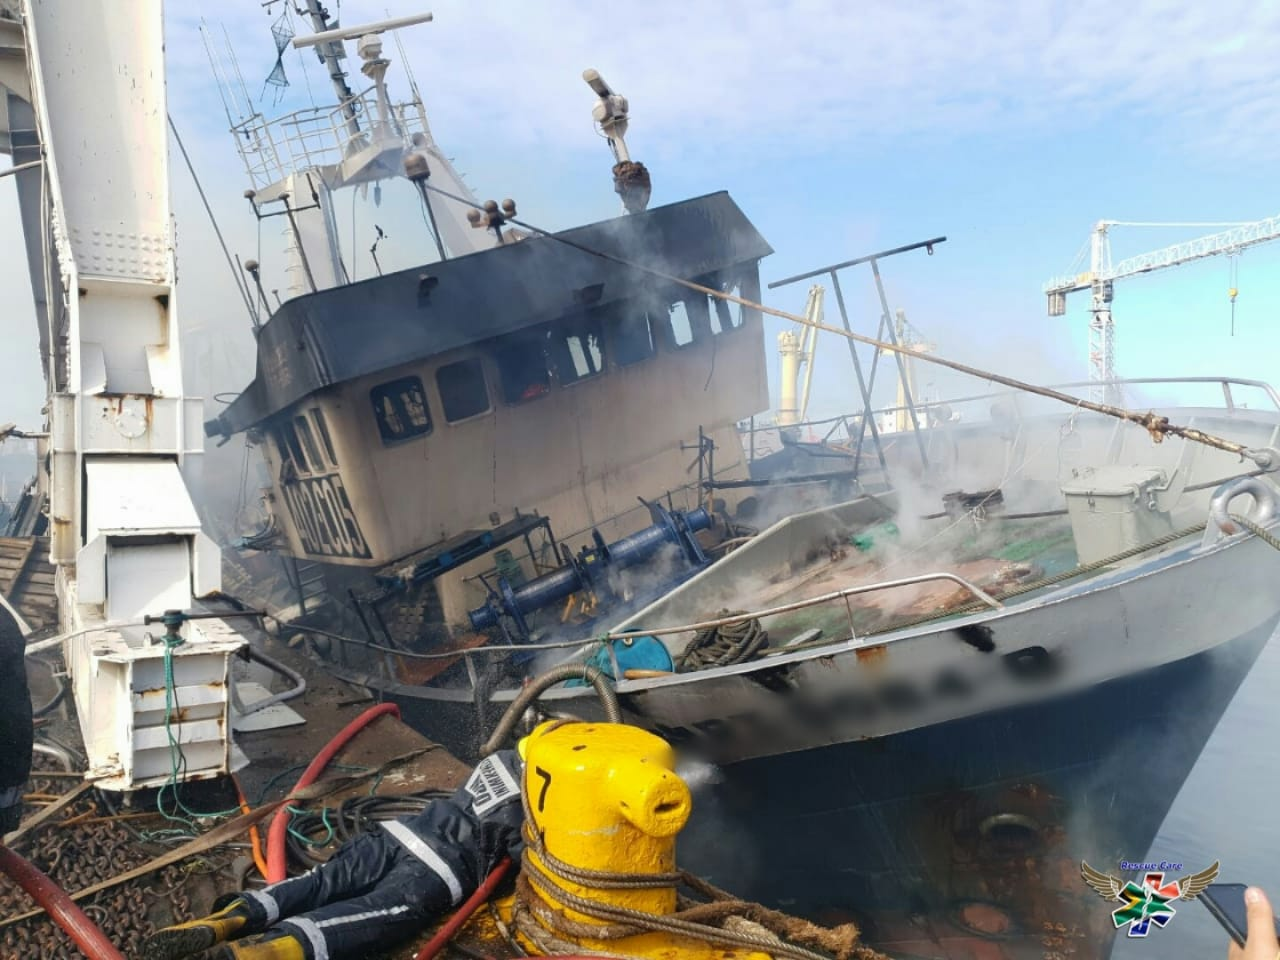 Six missing after ship burns in Durban harbour